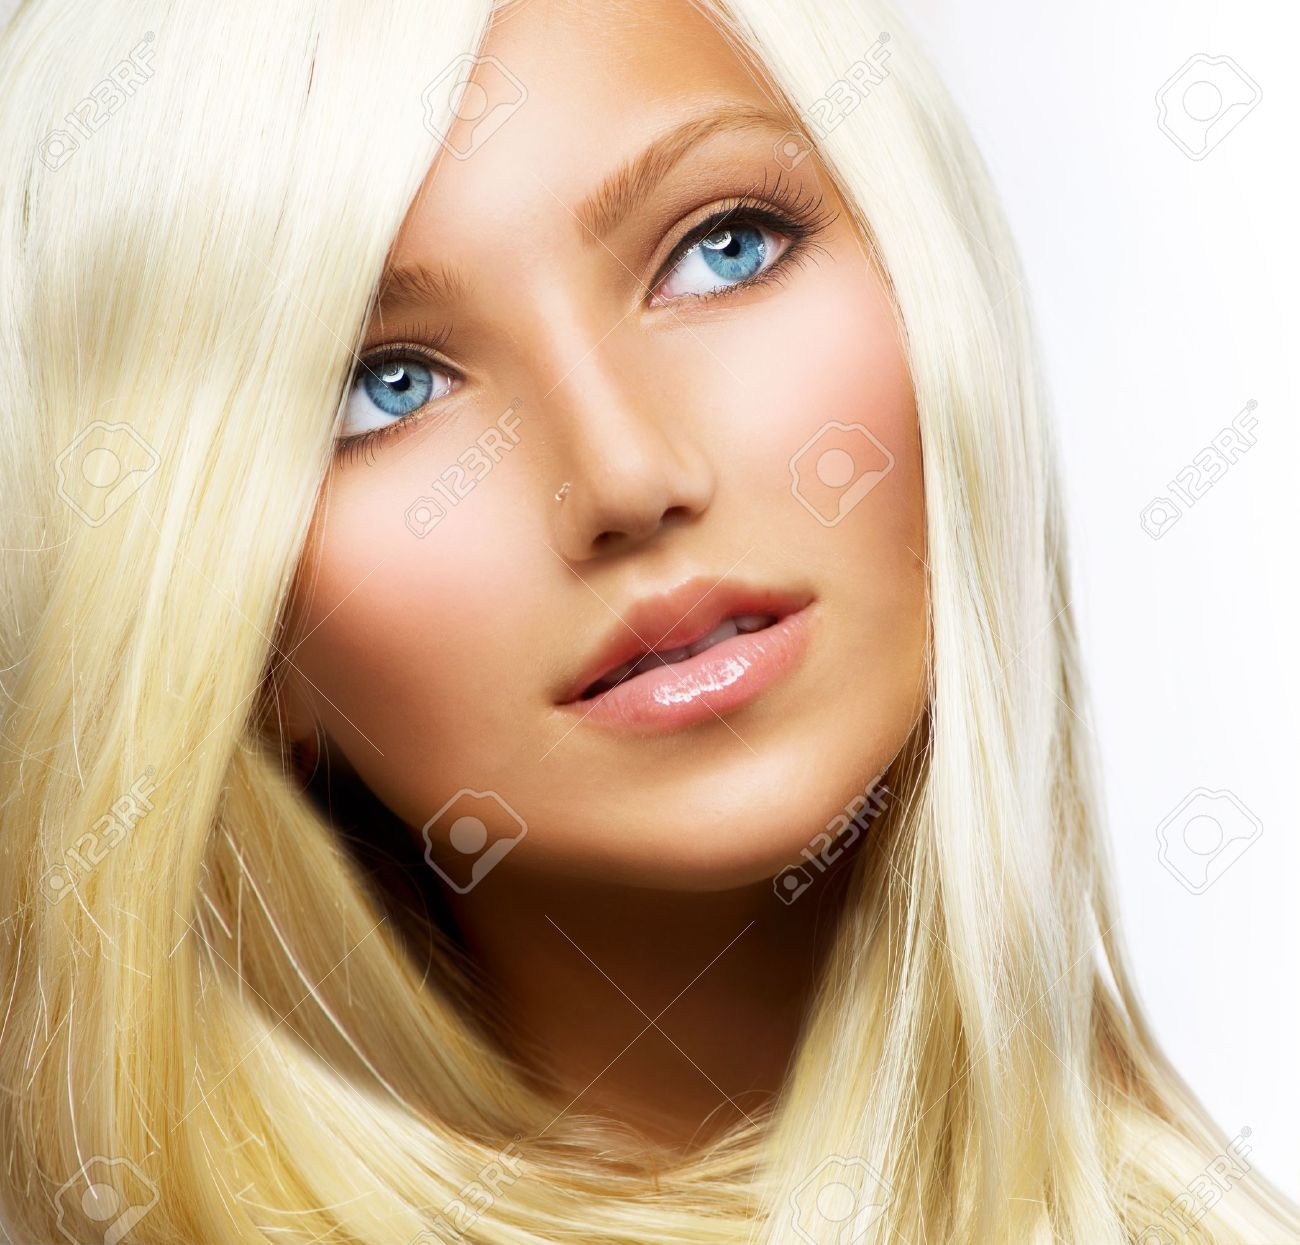 Beautiful Blond Girl isolated on a White Background Stock Photo - 14778946